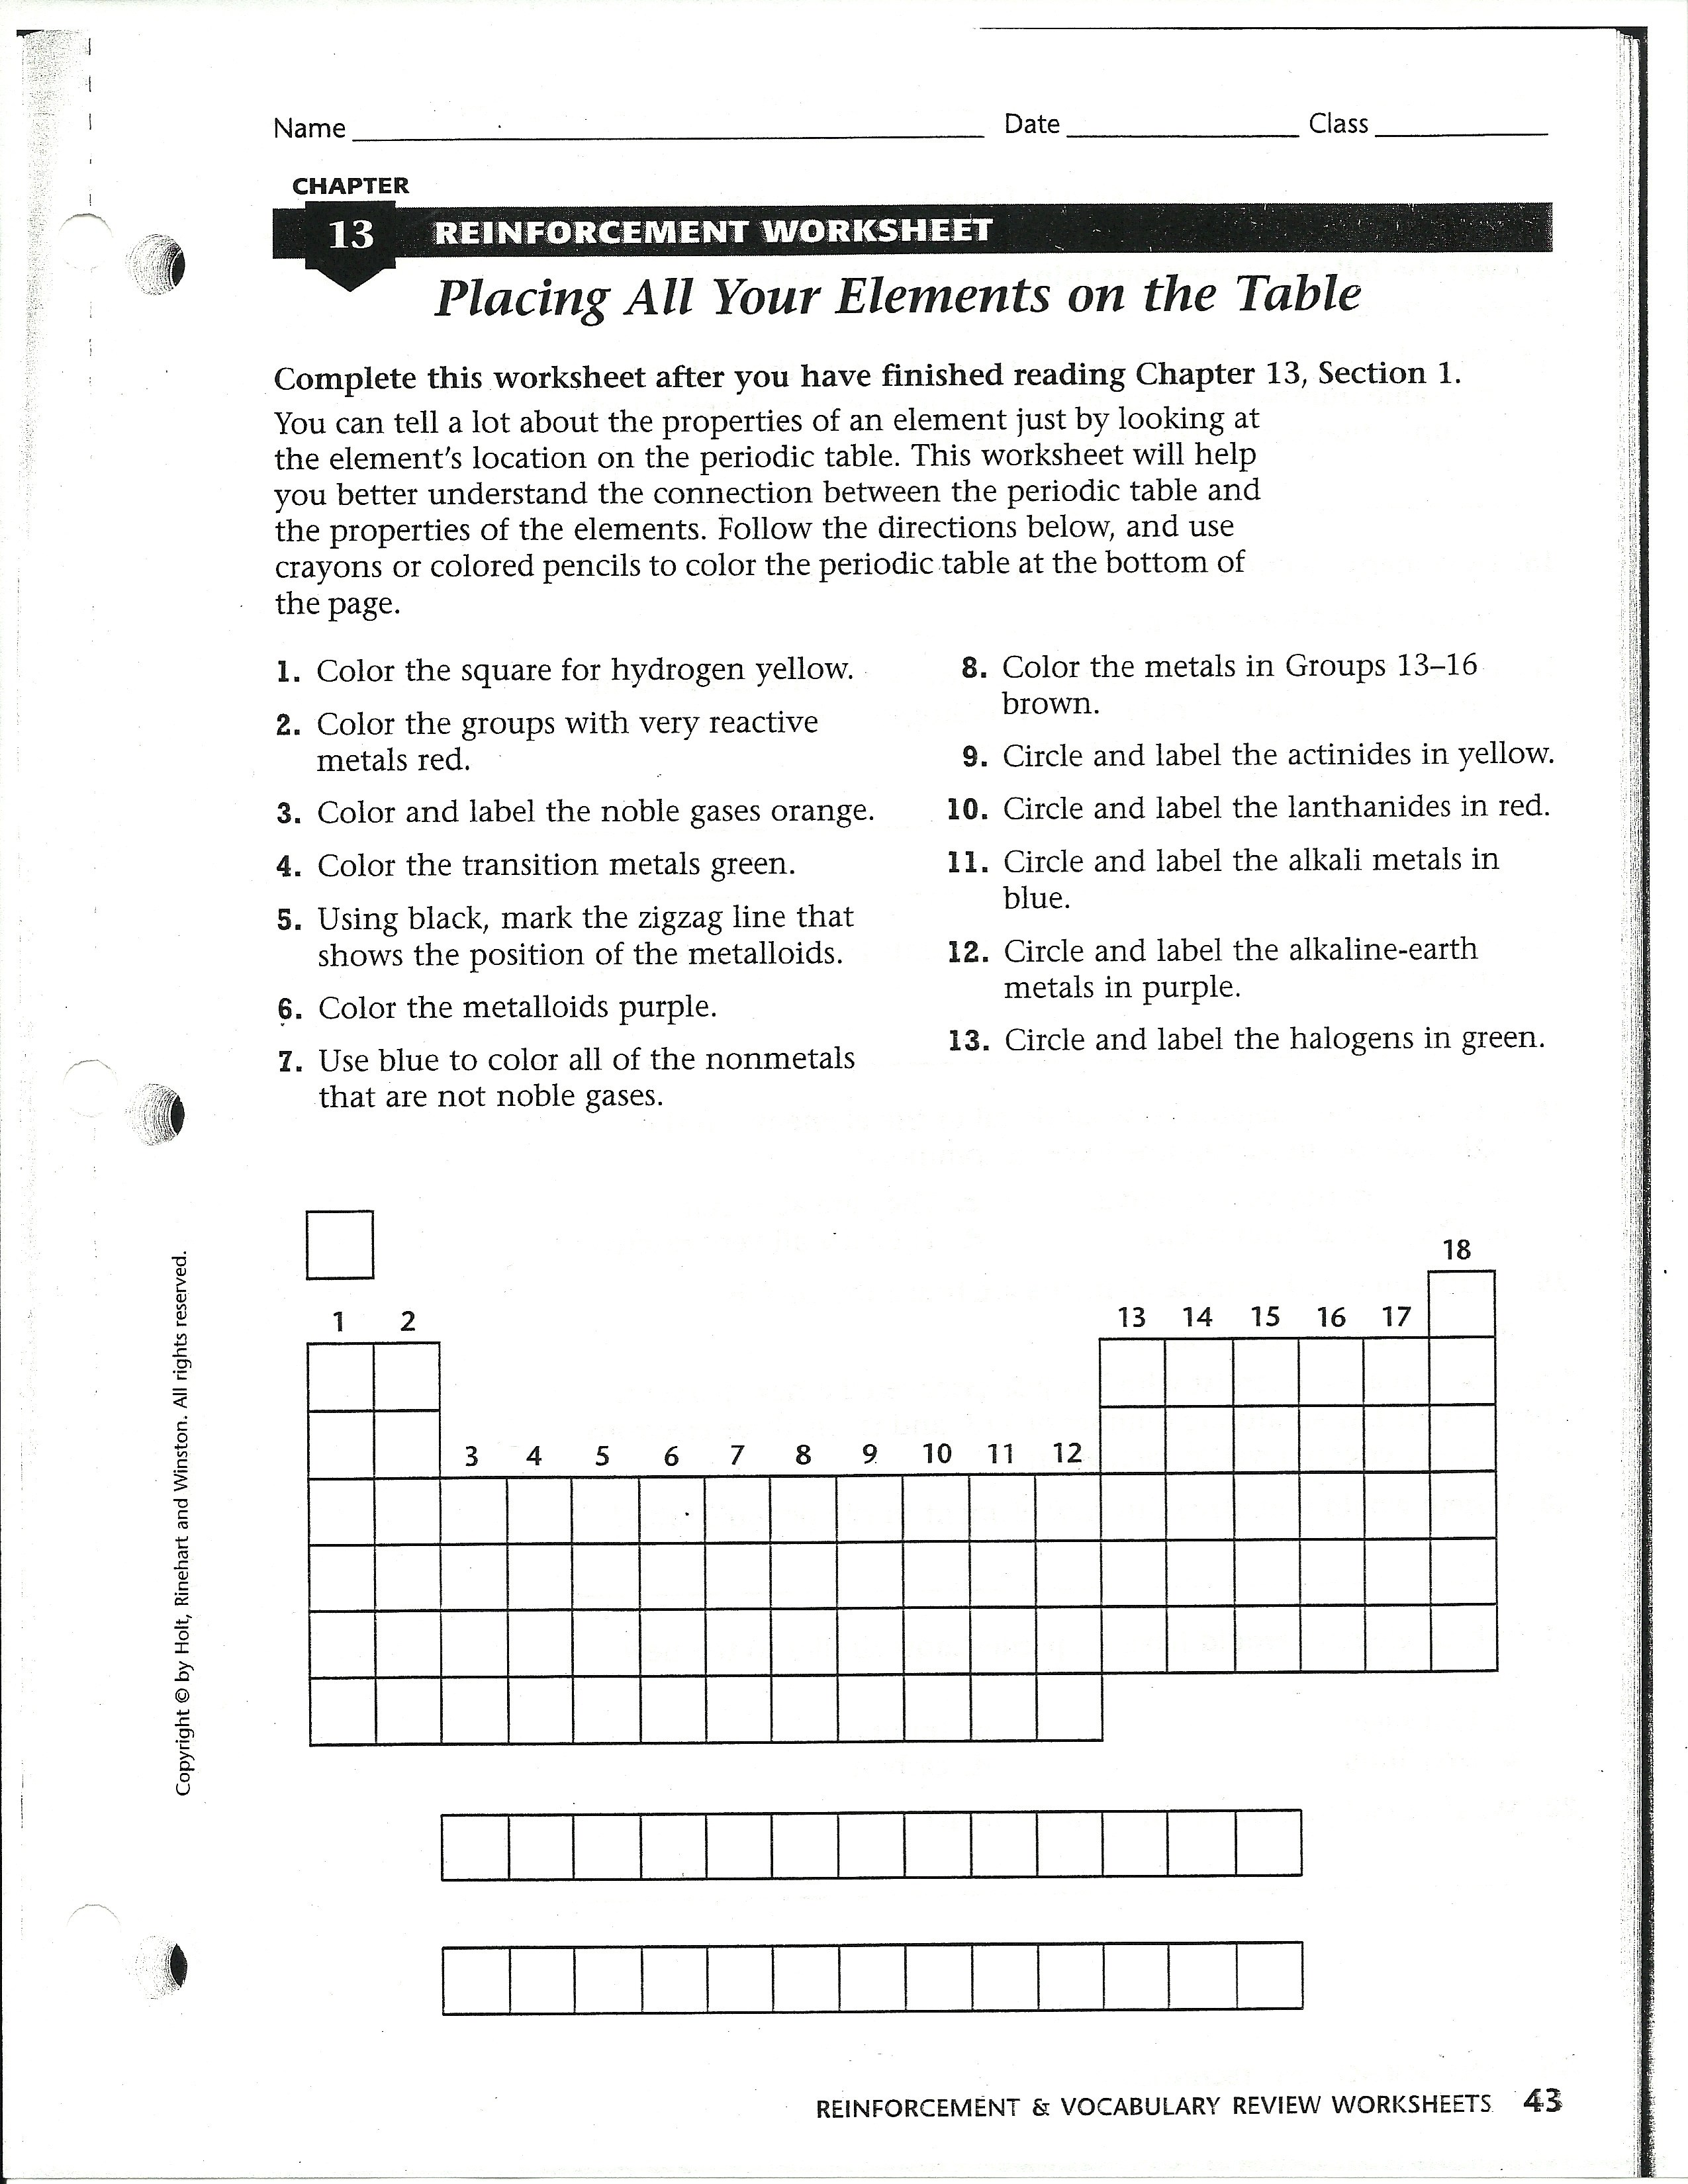 Worksheet Introduction To The Periodic Table Answer Key